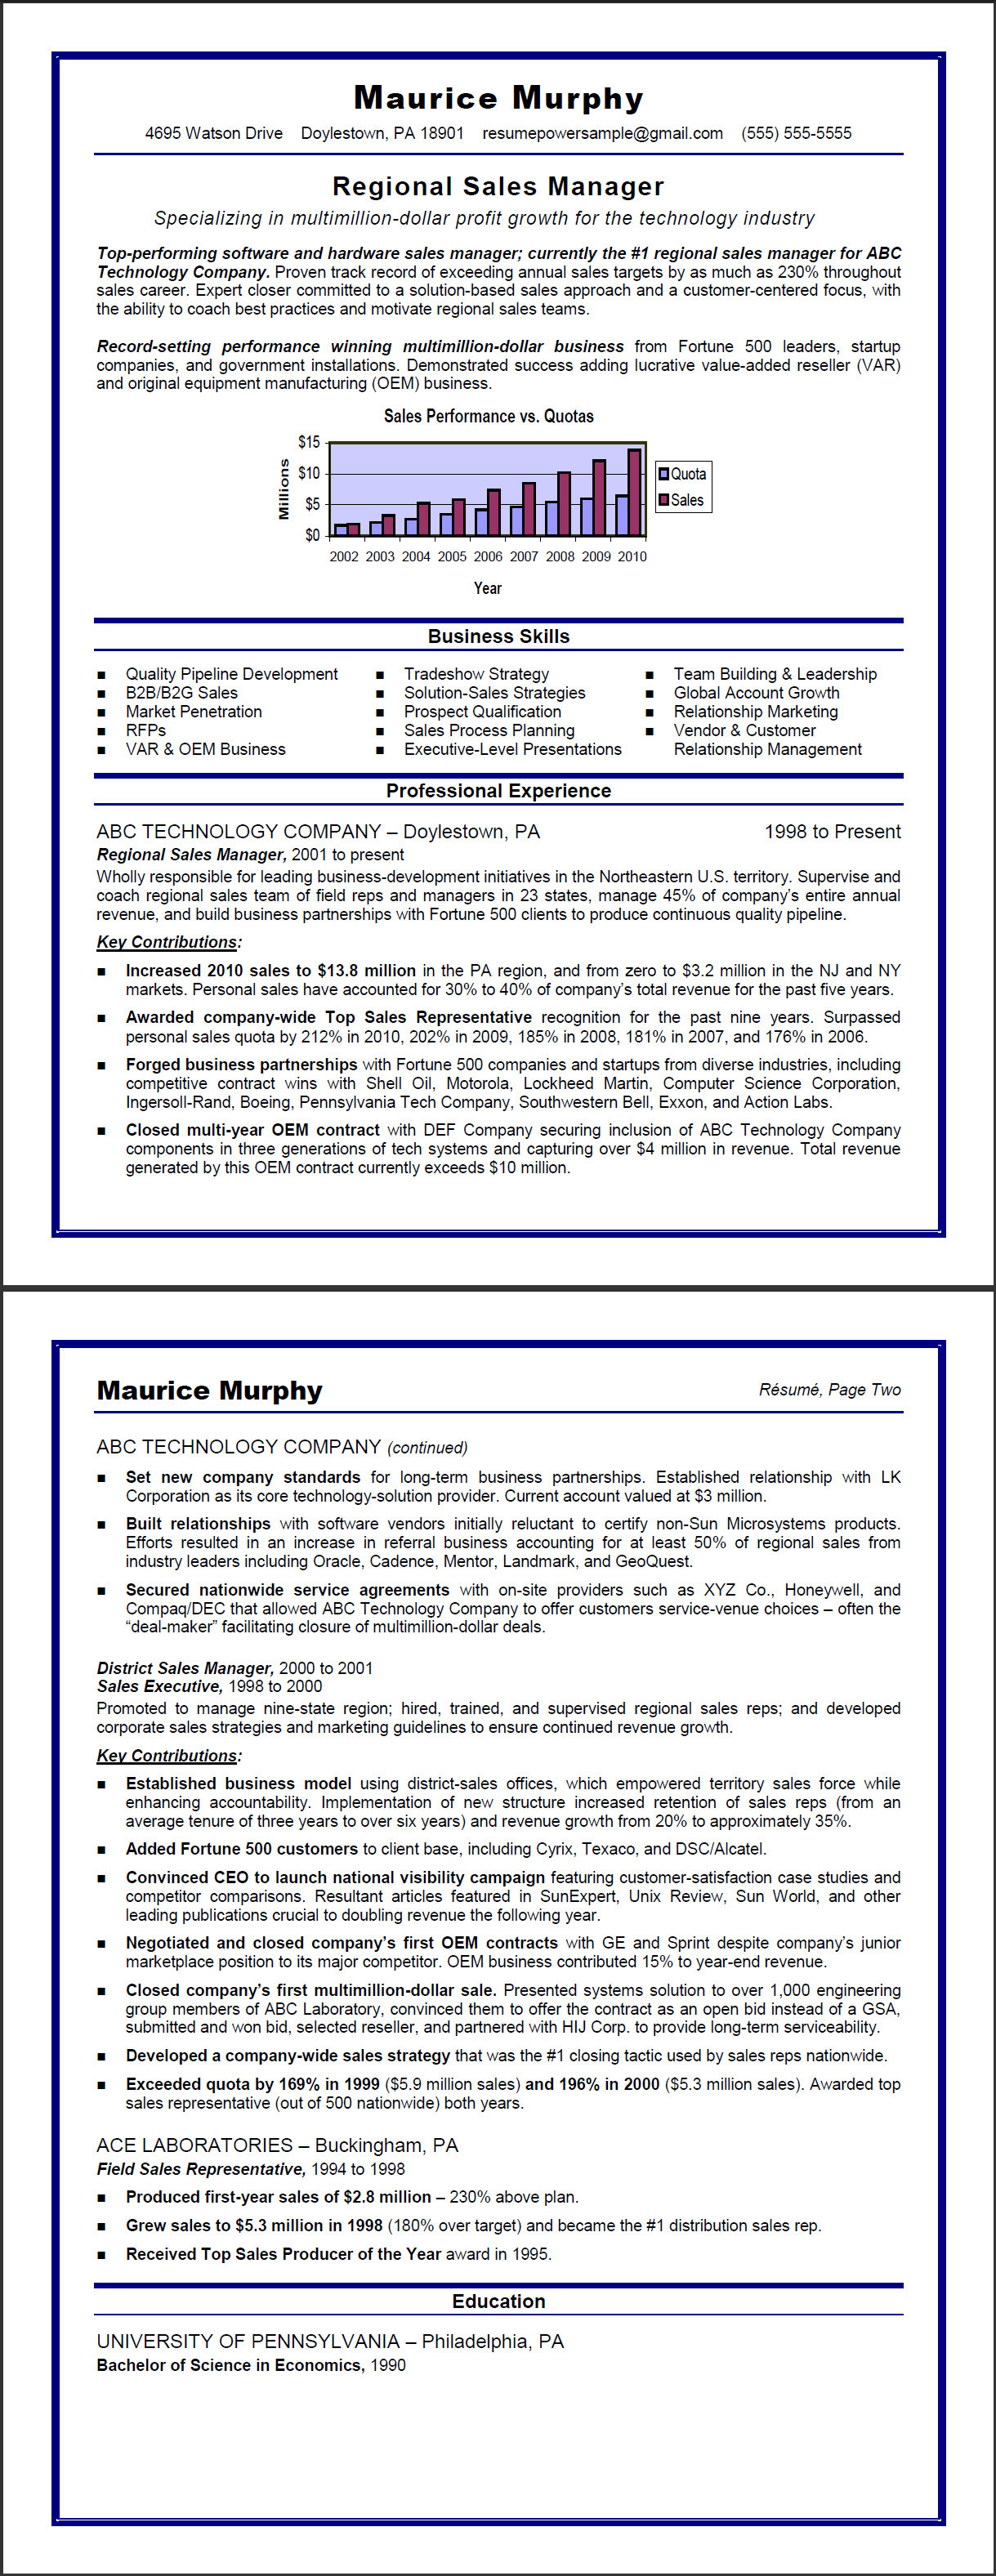 s resume sample resumepower resume writing strategy maurice s s accomplishments